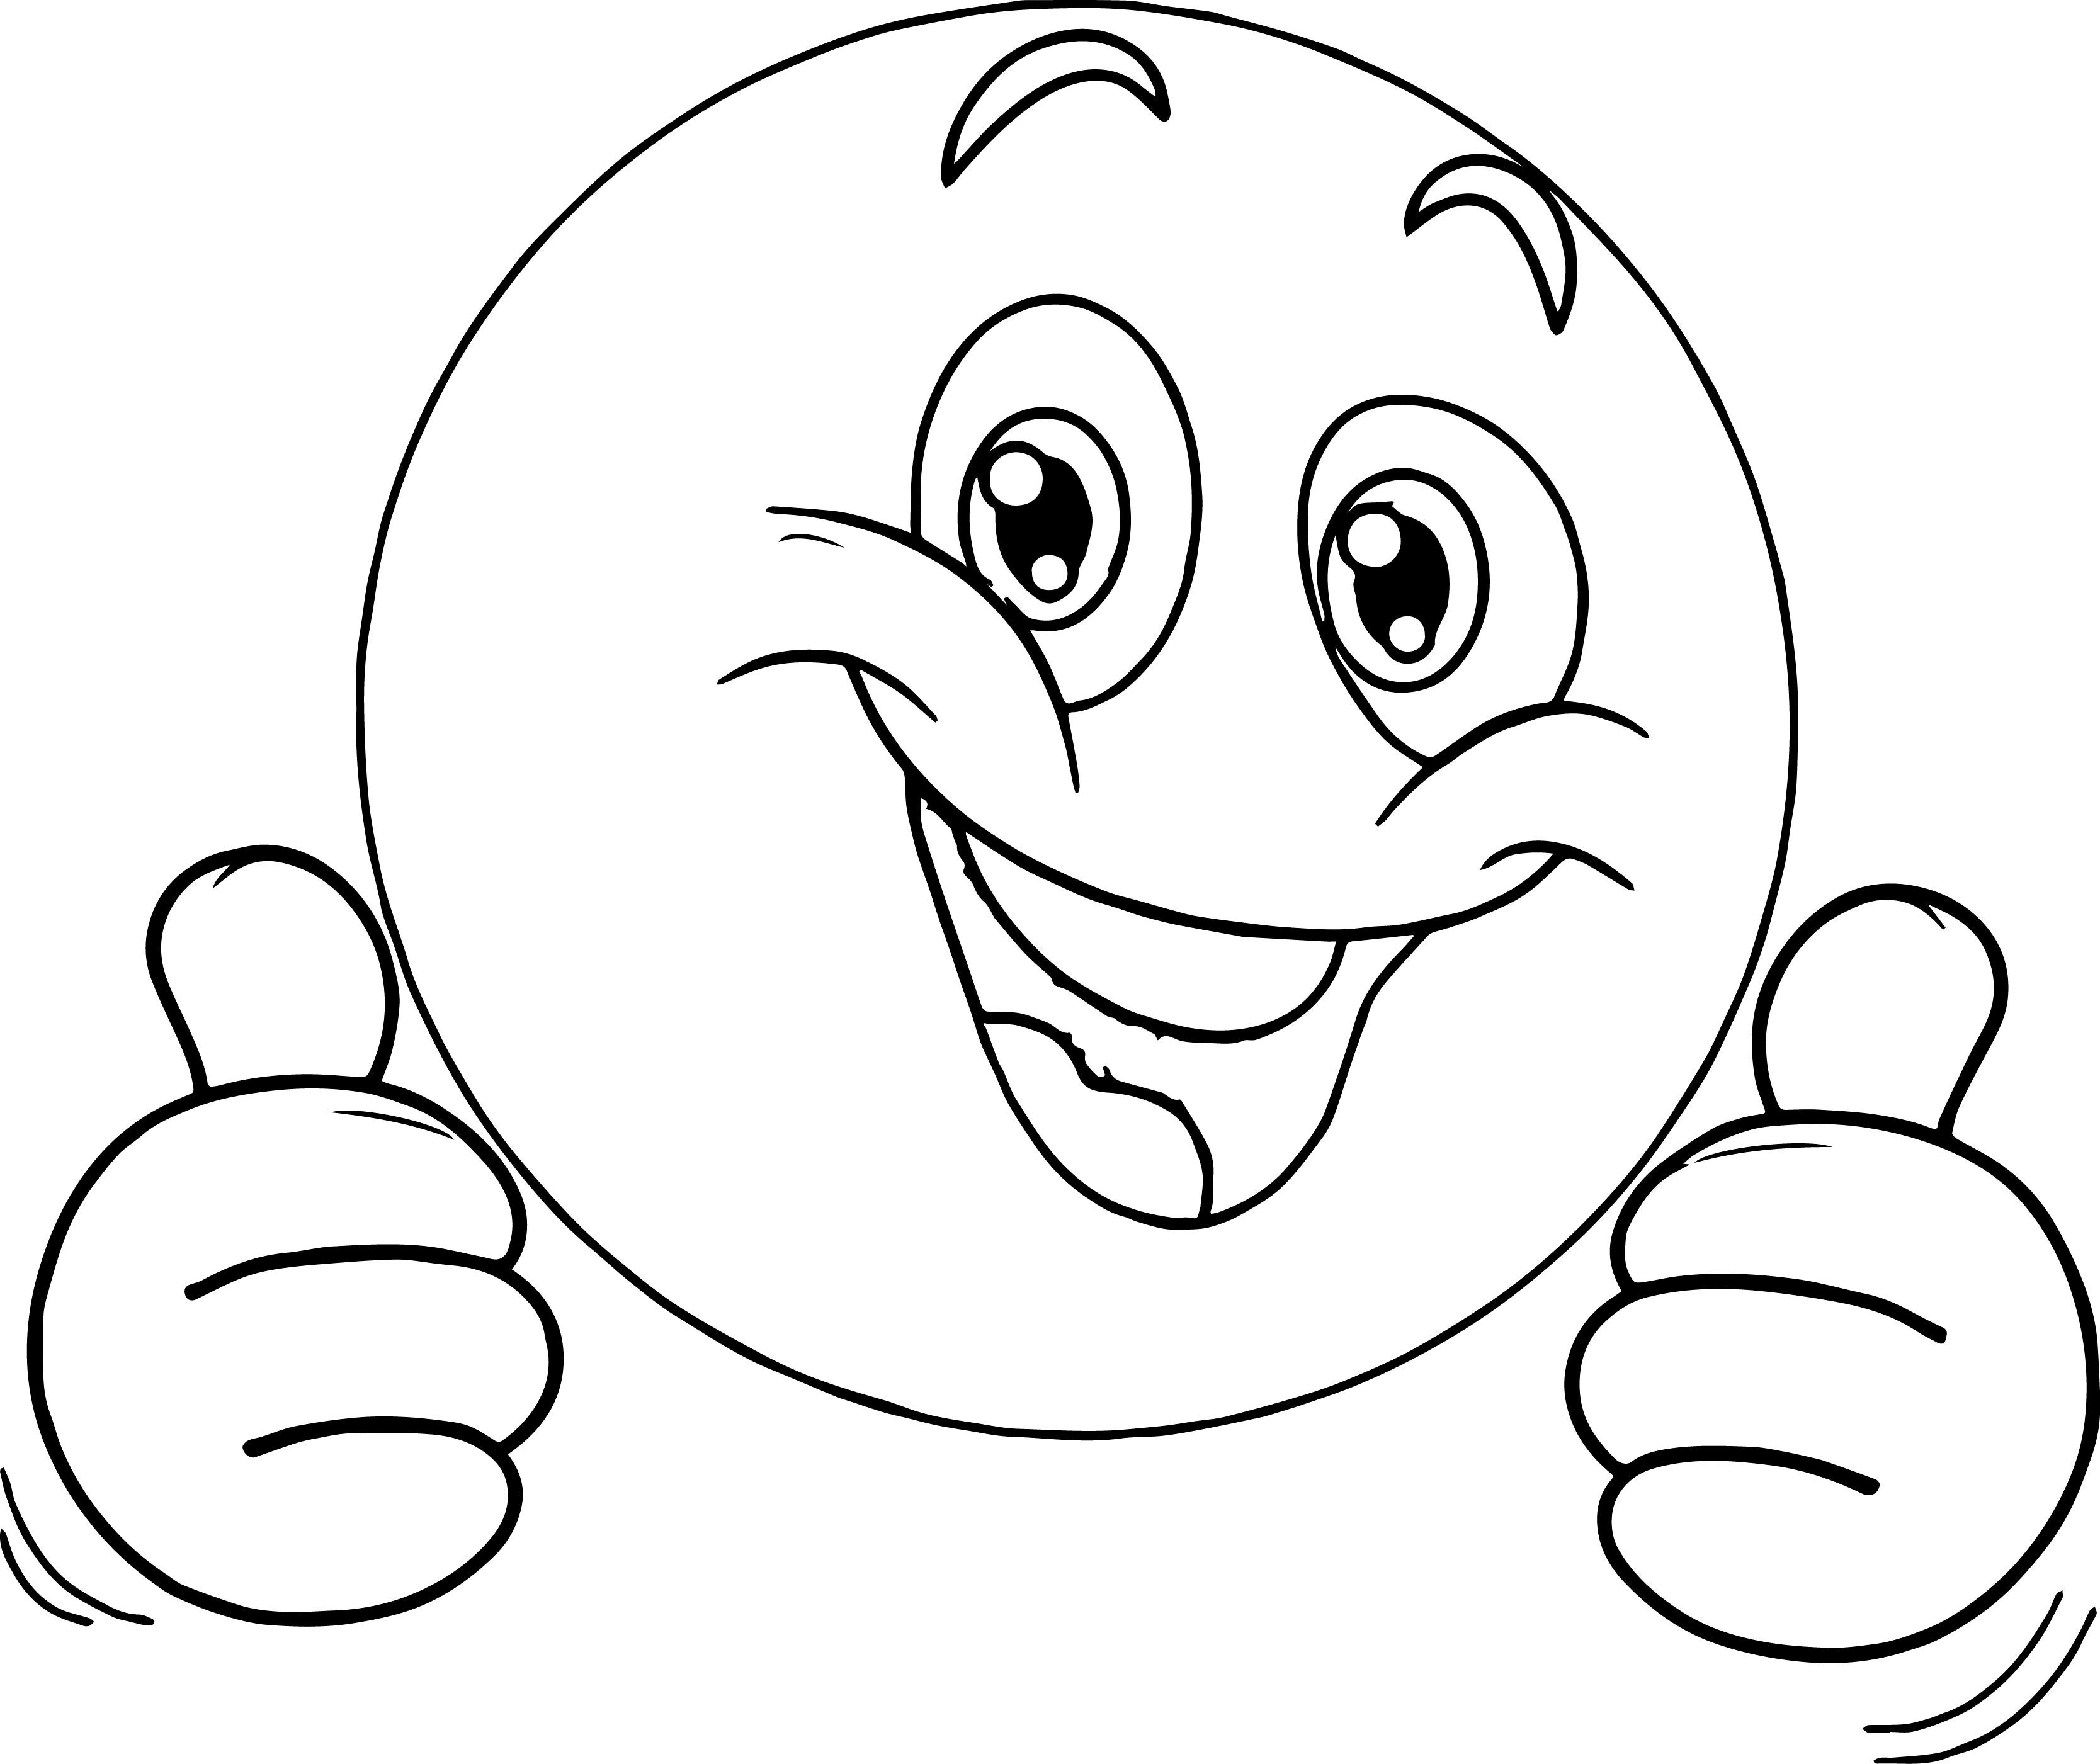 Coloring pages kids Coloring Pages To Print Emoji Whith